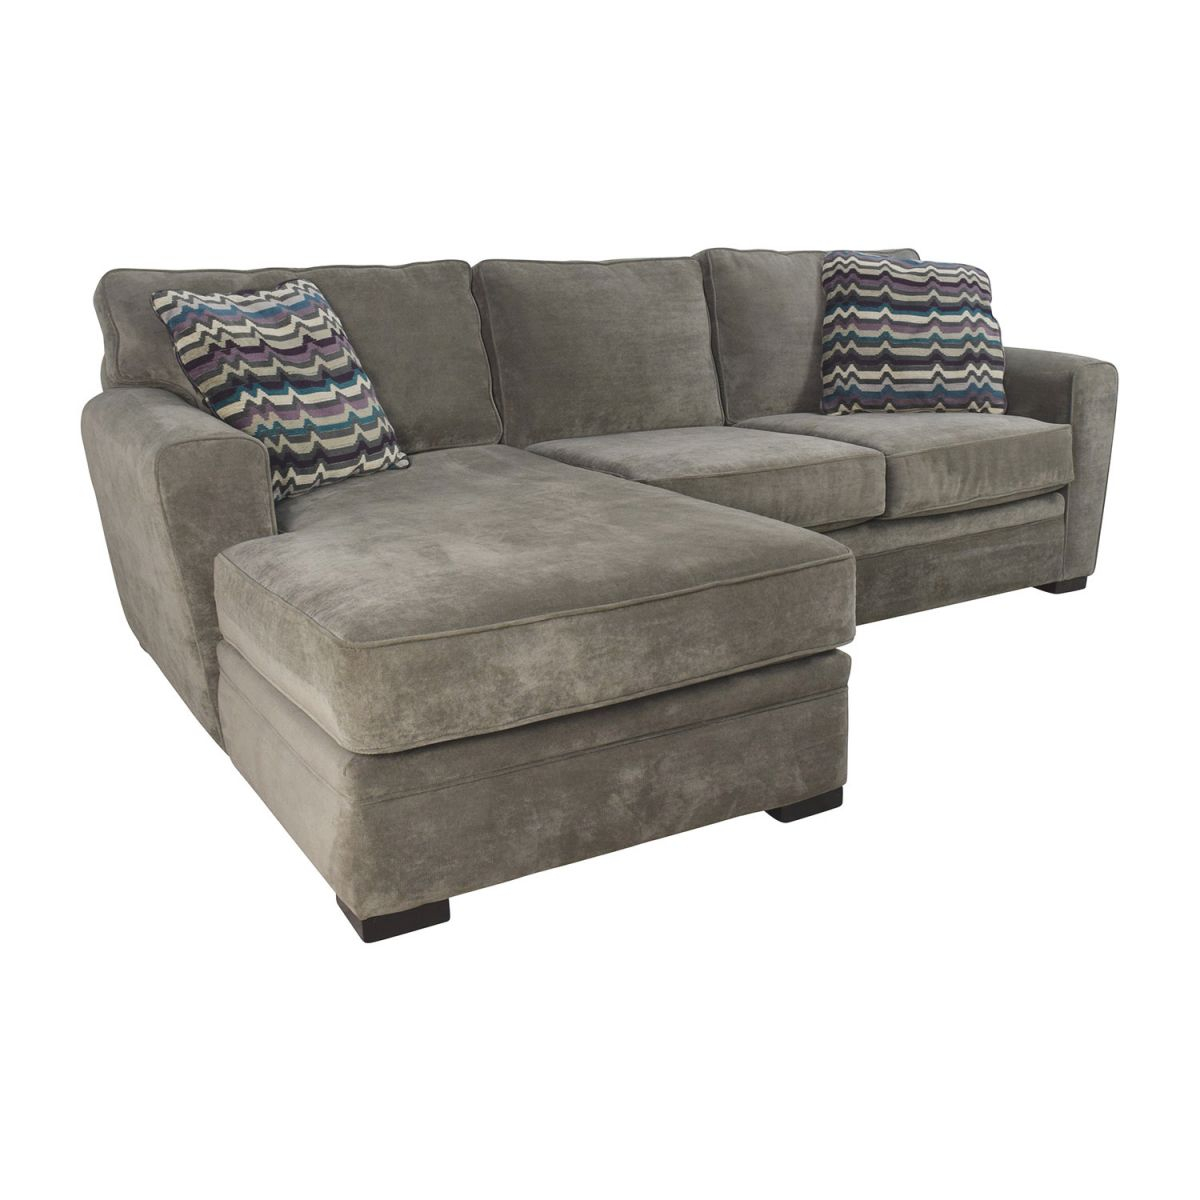 52% Off - Raymour & Flanigan Raymour & Flanigan Artemis Ii Microfiber Sectional Sofa / Sofas within Lovely Raymour And Flanigan Sectional Sofas